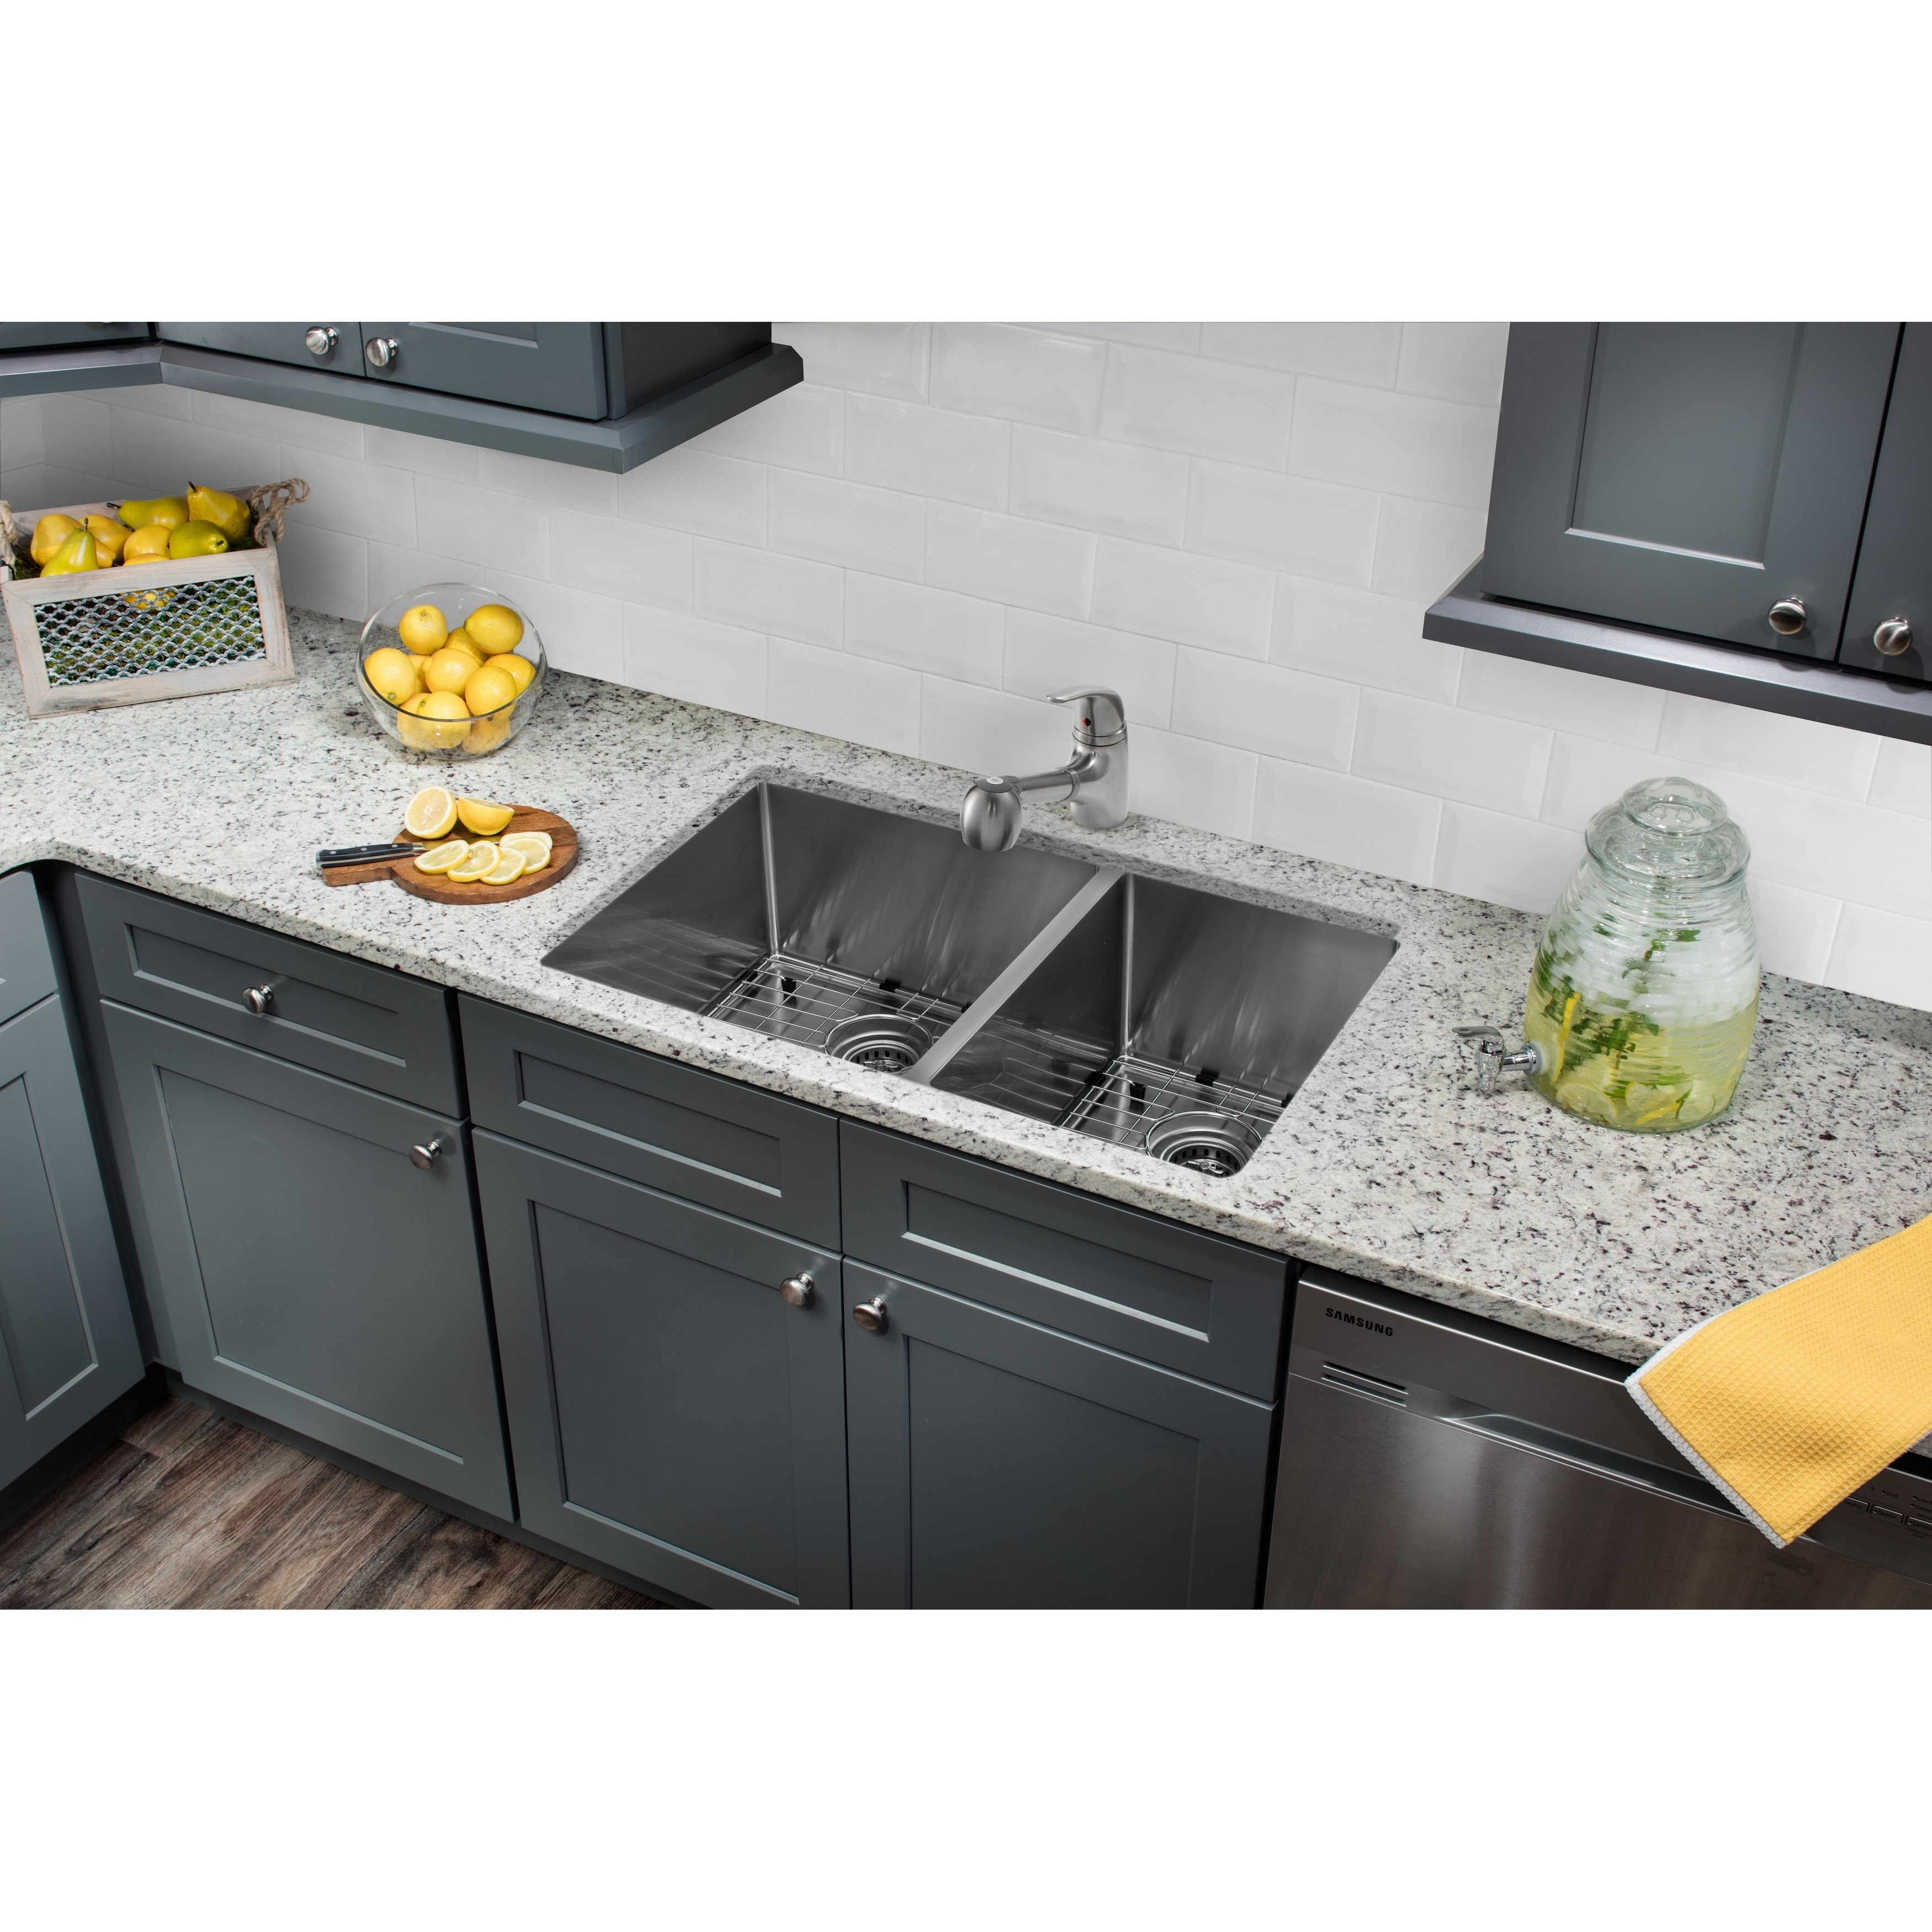 Cahaba 32 x 19 16 Gauge SS Handmade 60/40 Kitchen Sink with Low ...